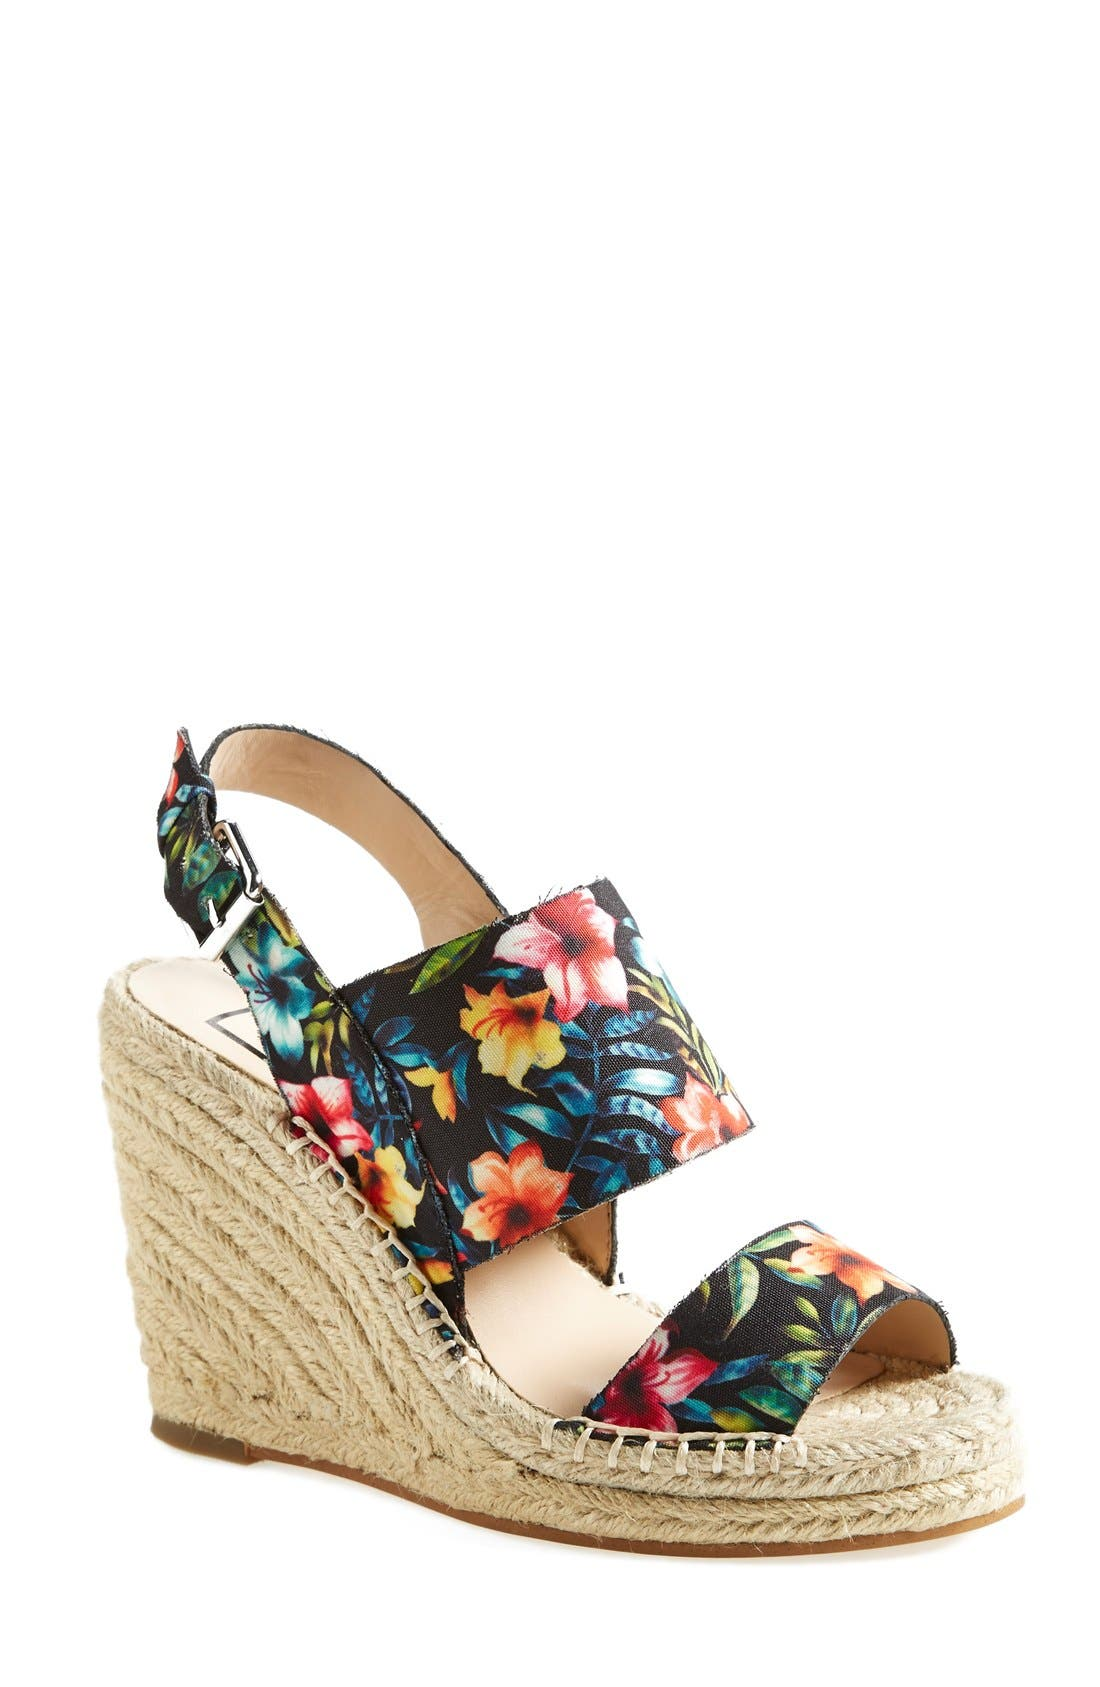 Alternate Image 1 Selected - DV by Dolce Vita 'Shady' Wedge Sandal (Women)